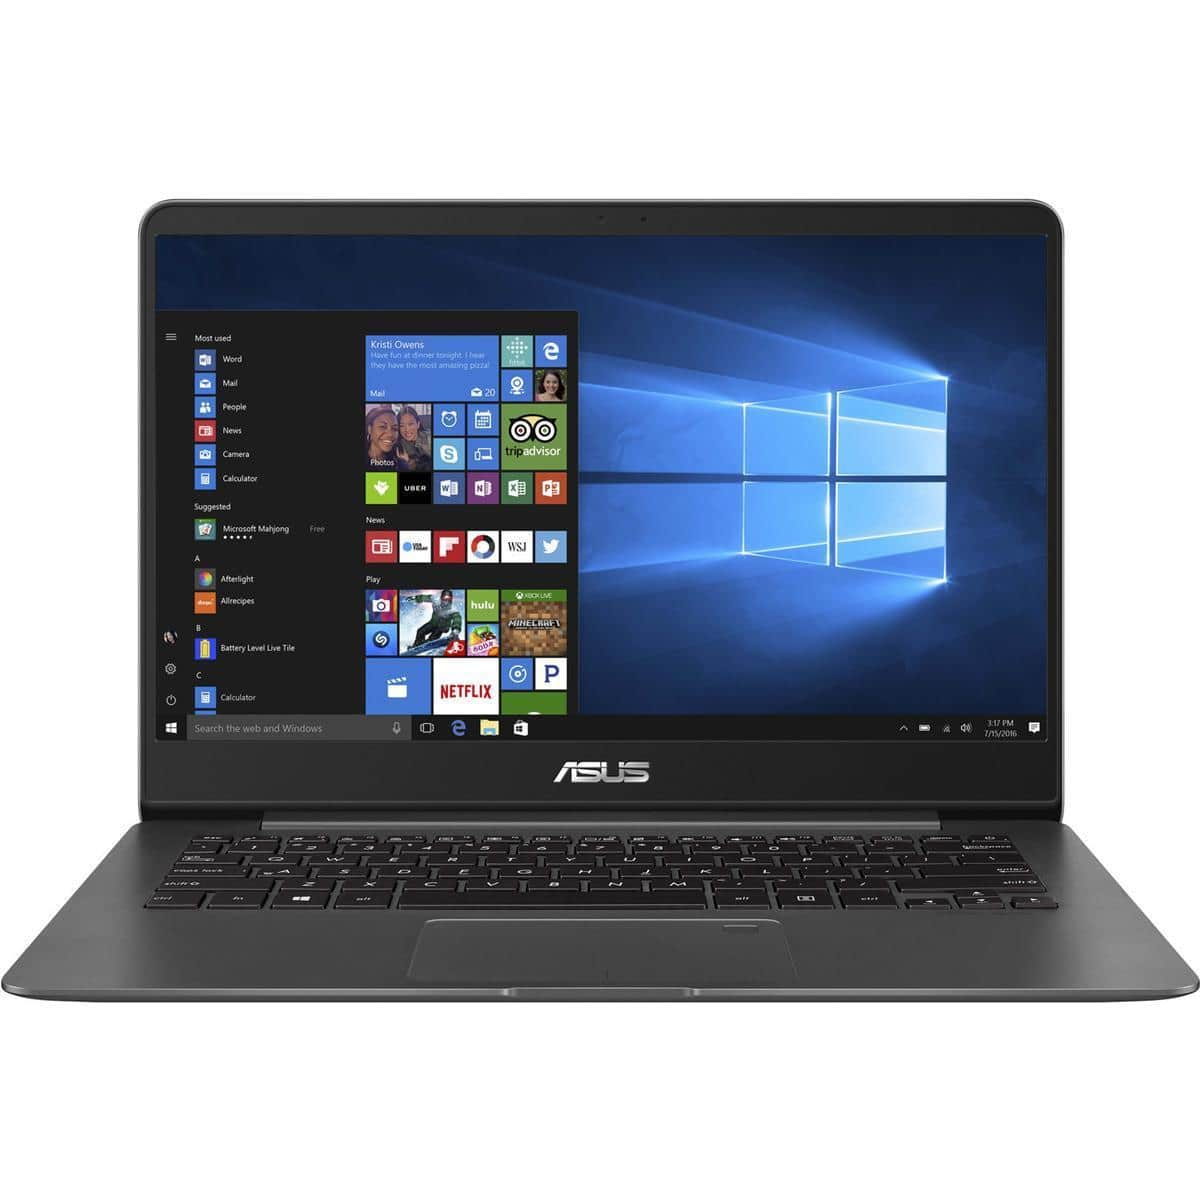 "Asus ZenBook Flip 14 UX461UA 2-in1 Laptop: Intel Core i5-8250U, 14"" 1080p Touchscreen, 8GB DDR3, 256GB SSD, Type-C, Win 10 $674.24 AC + Free Shipping @ Office Depot"